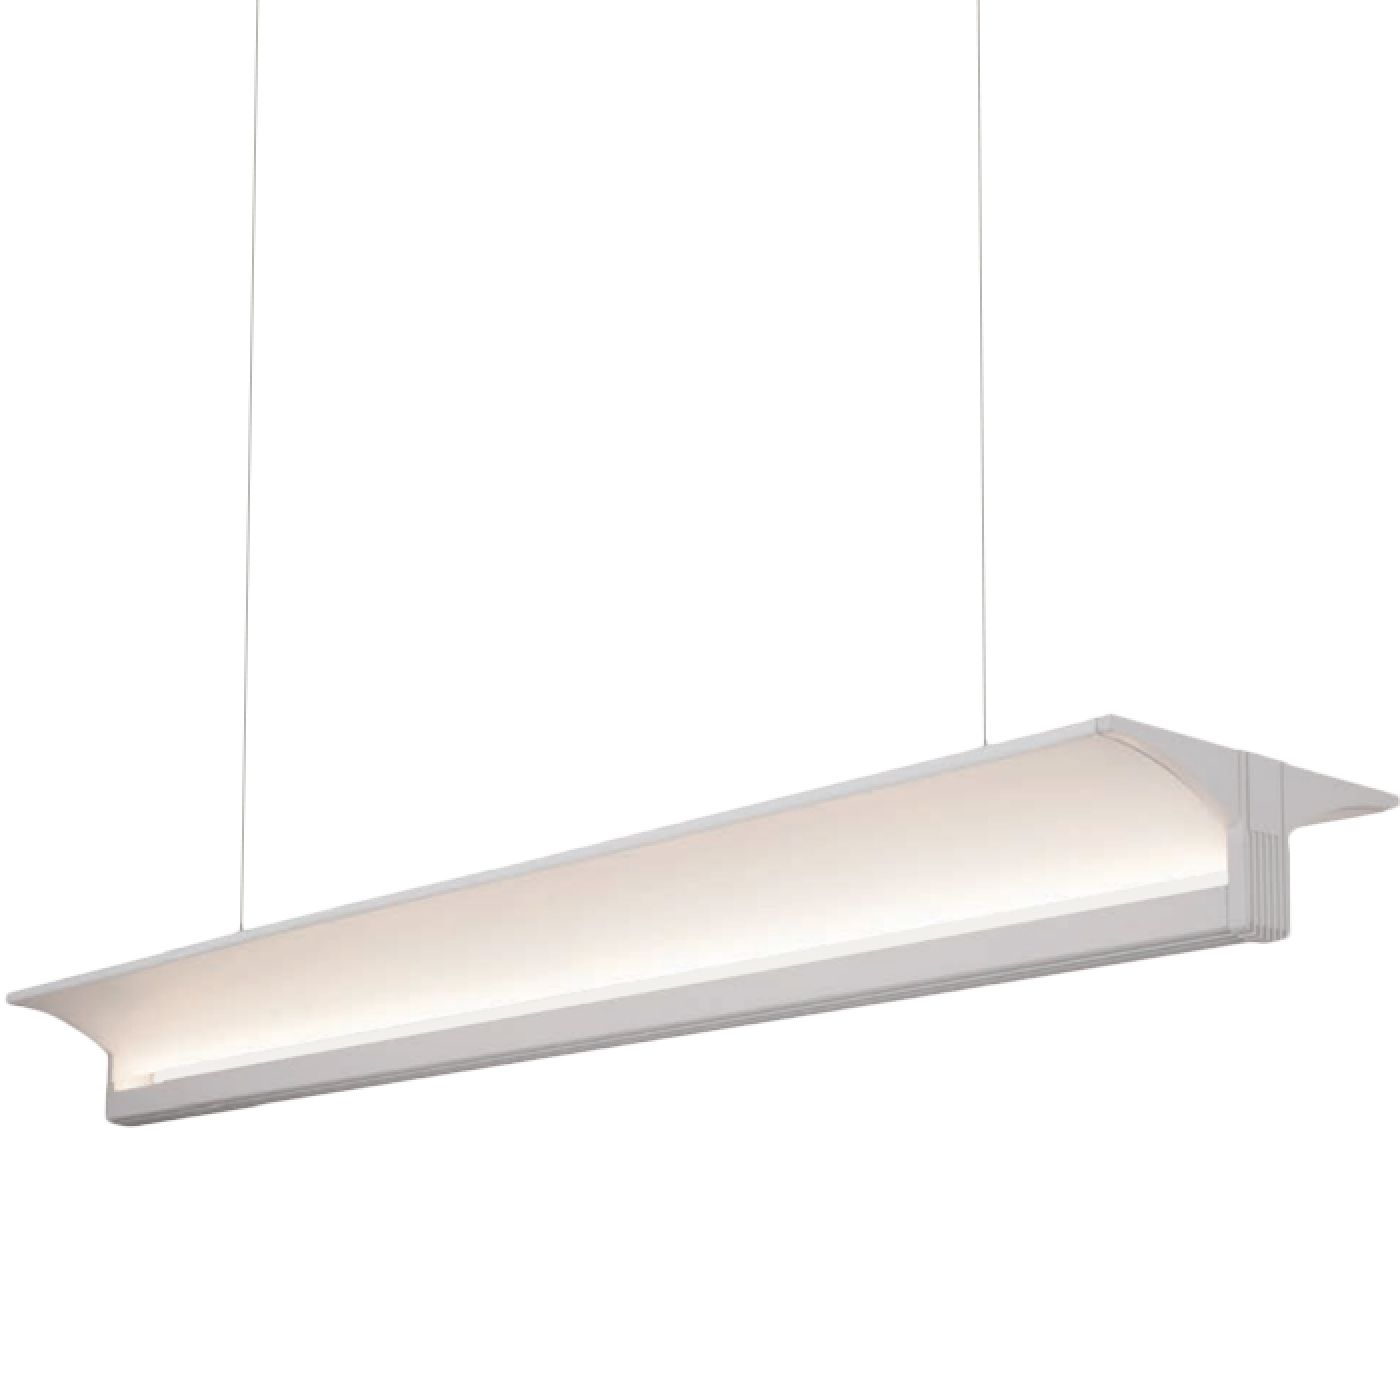 linear suspended lighting. Alcon Lighting 12126 Tee Beam Architectural LED Linear Suspended Pendant Mount Indirect Up Light Fixture | AlconLighting.com